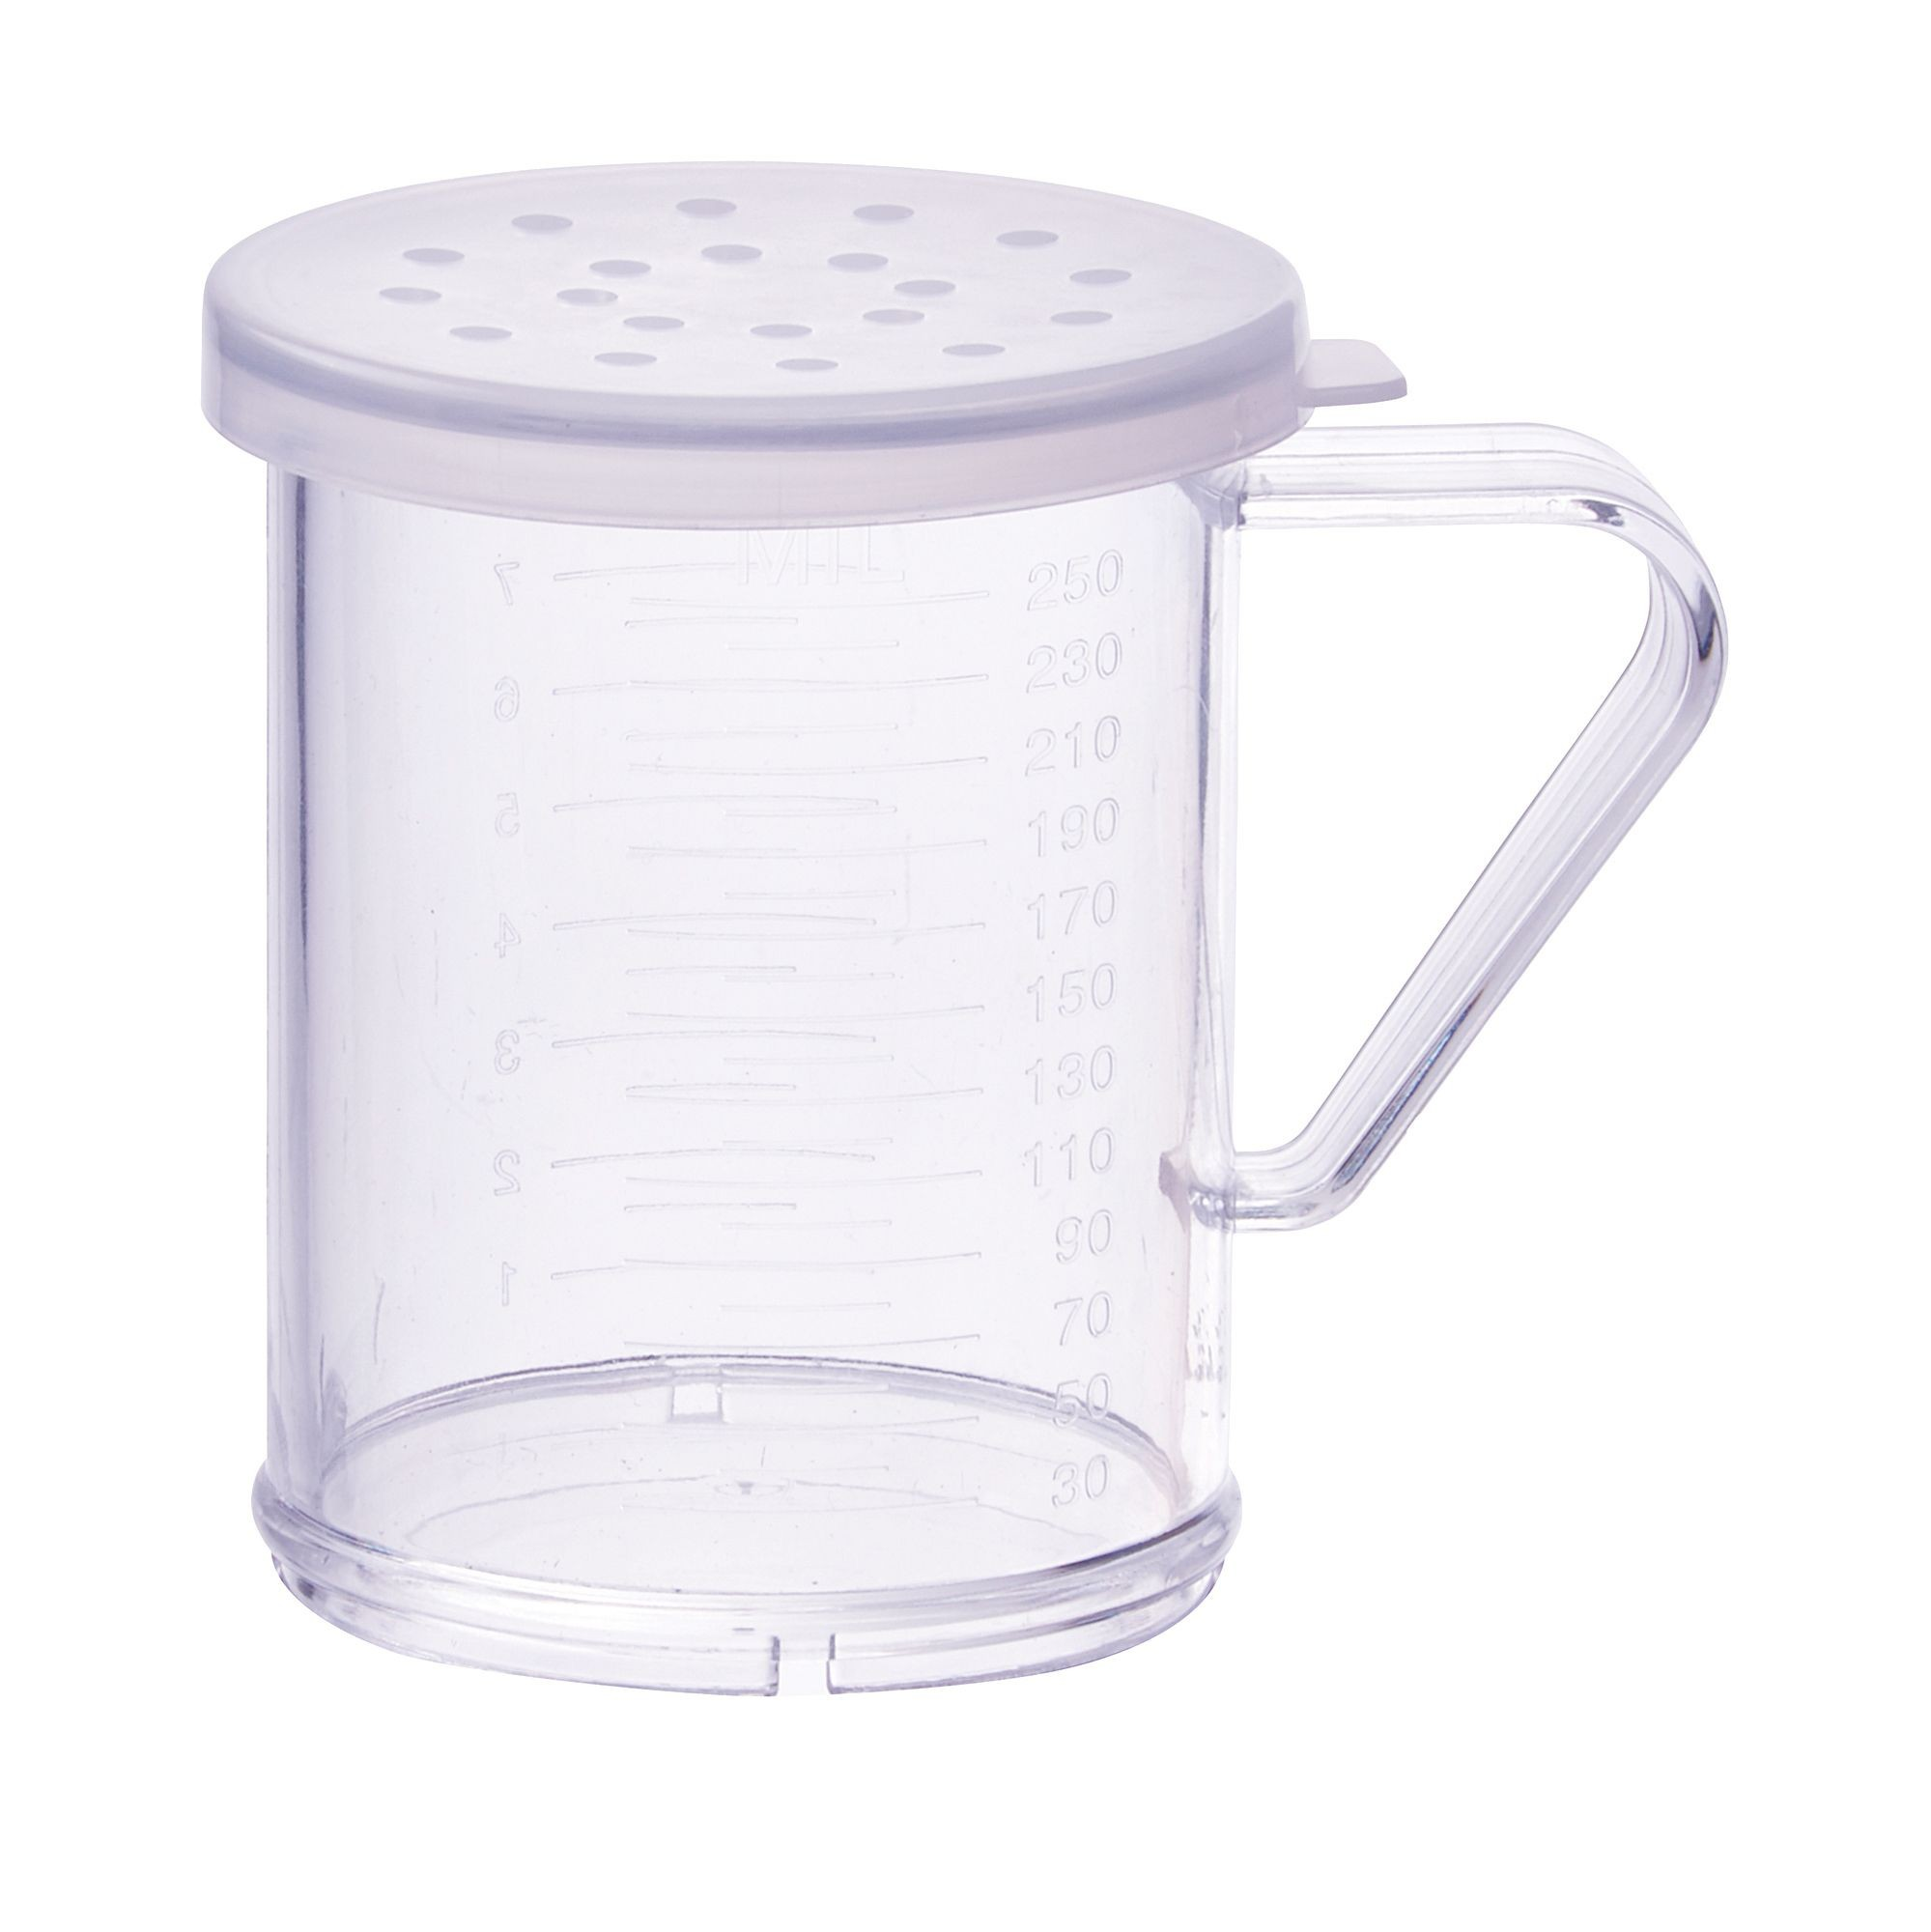 Winco PDG-10CL 10 oz. Polycarbonate Dredge with Clear Snap-On Lid, Large Holes